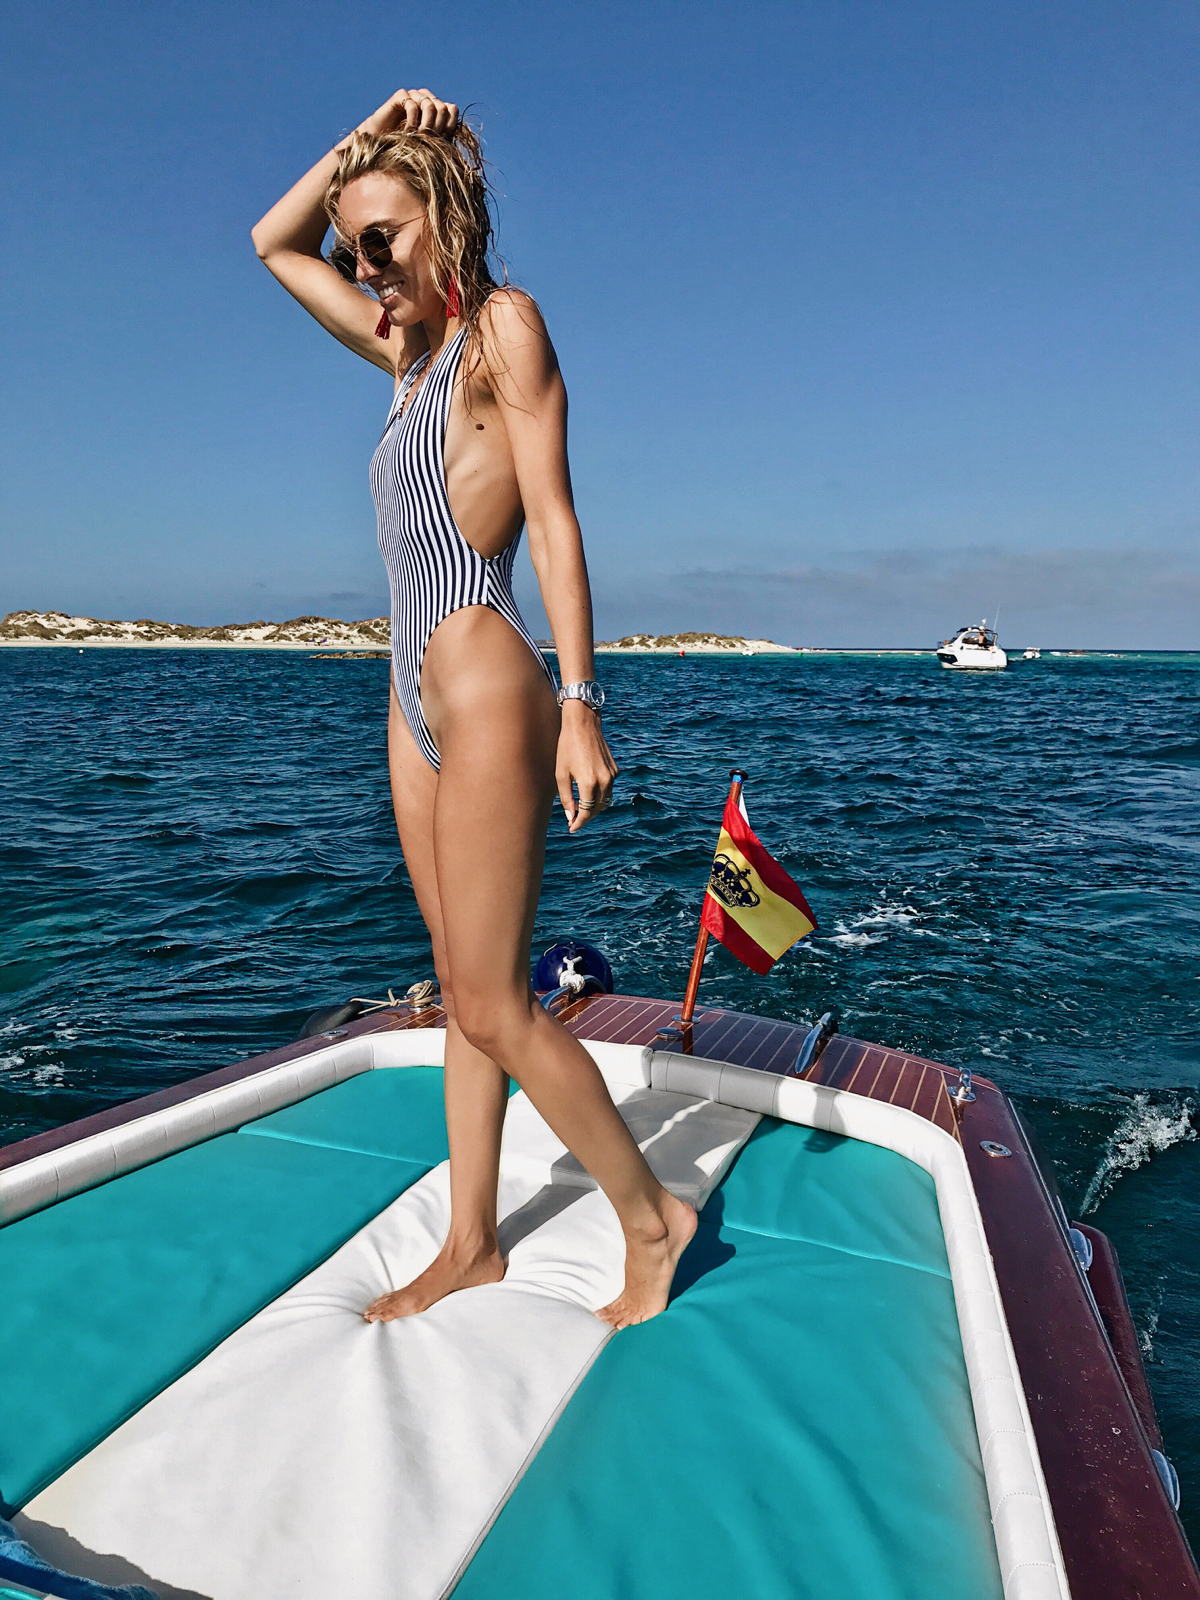 Norma Kamali swimsuit, Ibiza, Spain, Travel